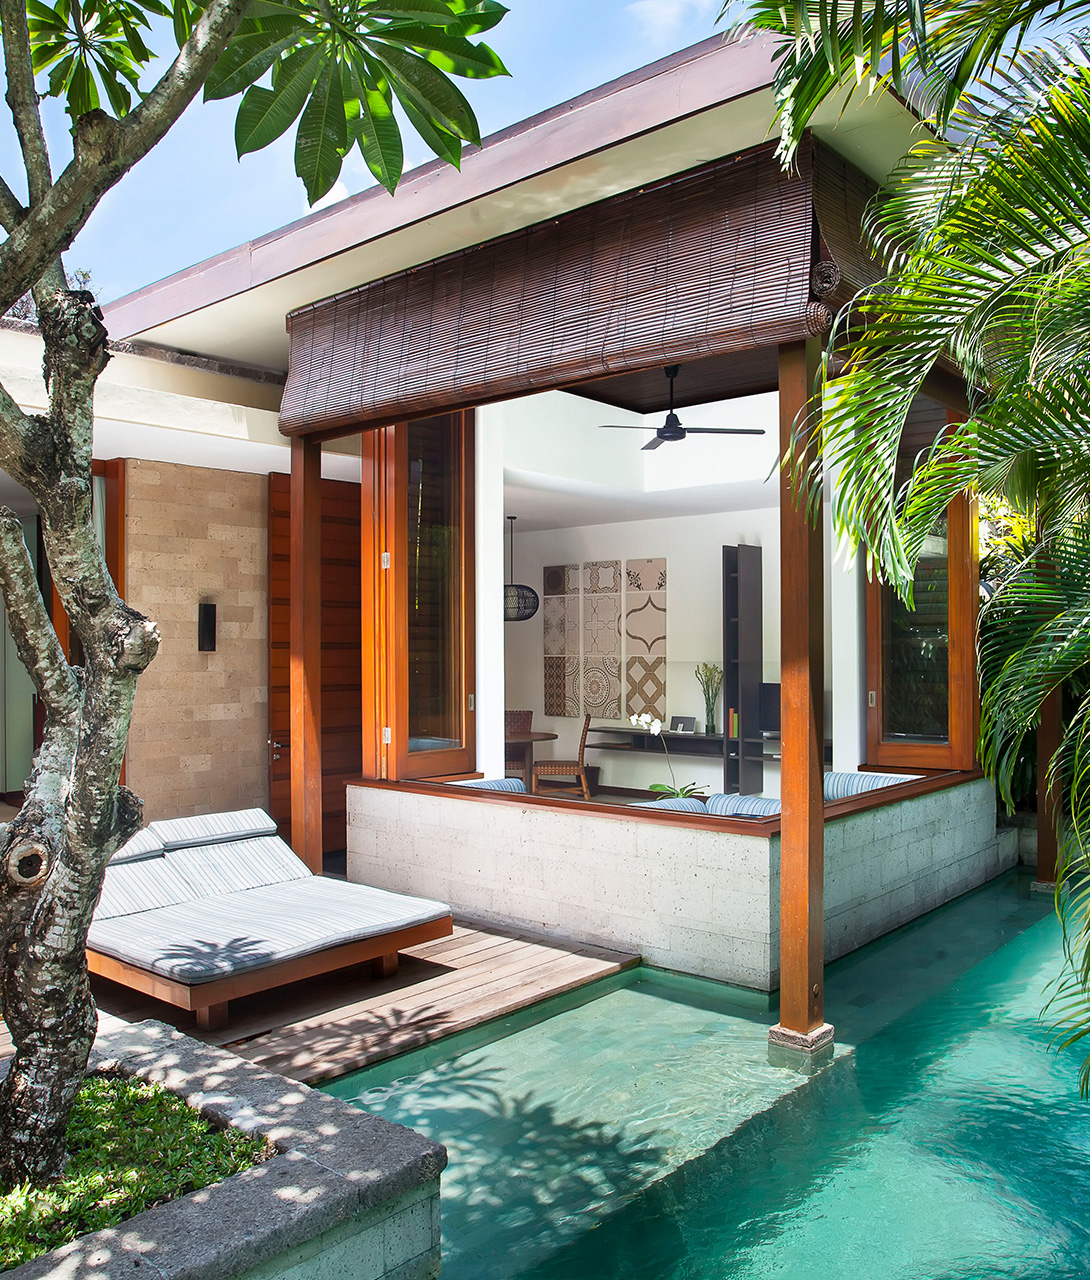 The Elysian Boutique Villa Hotel Architecture in Bali